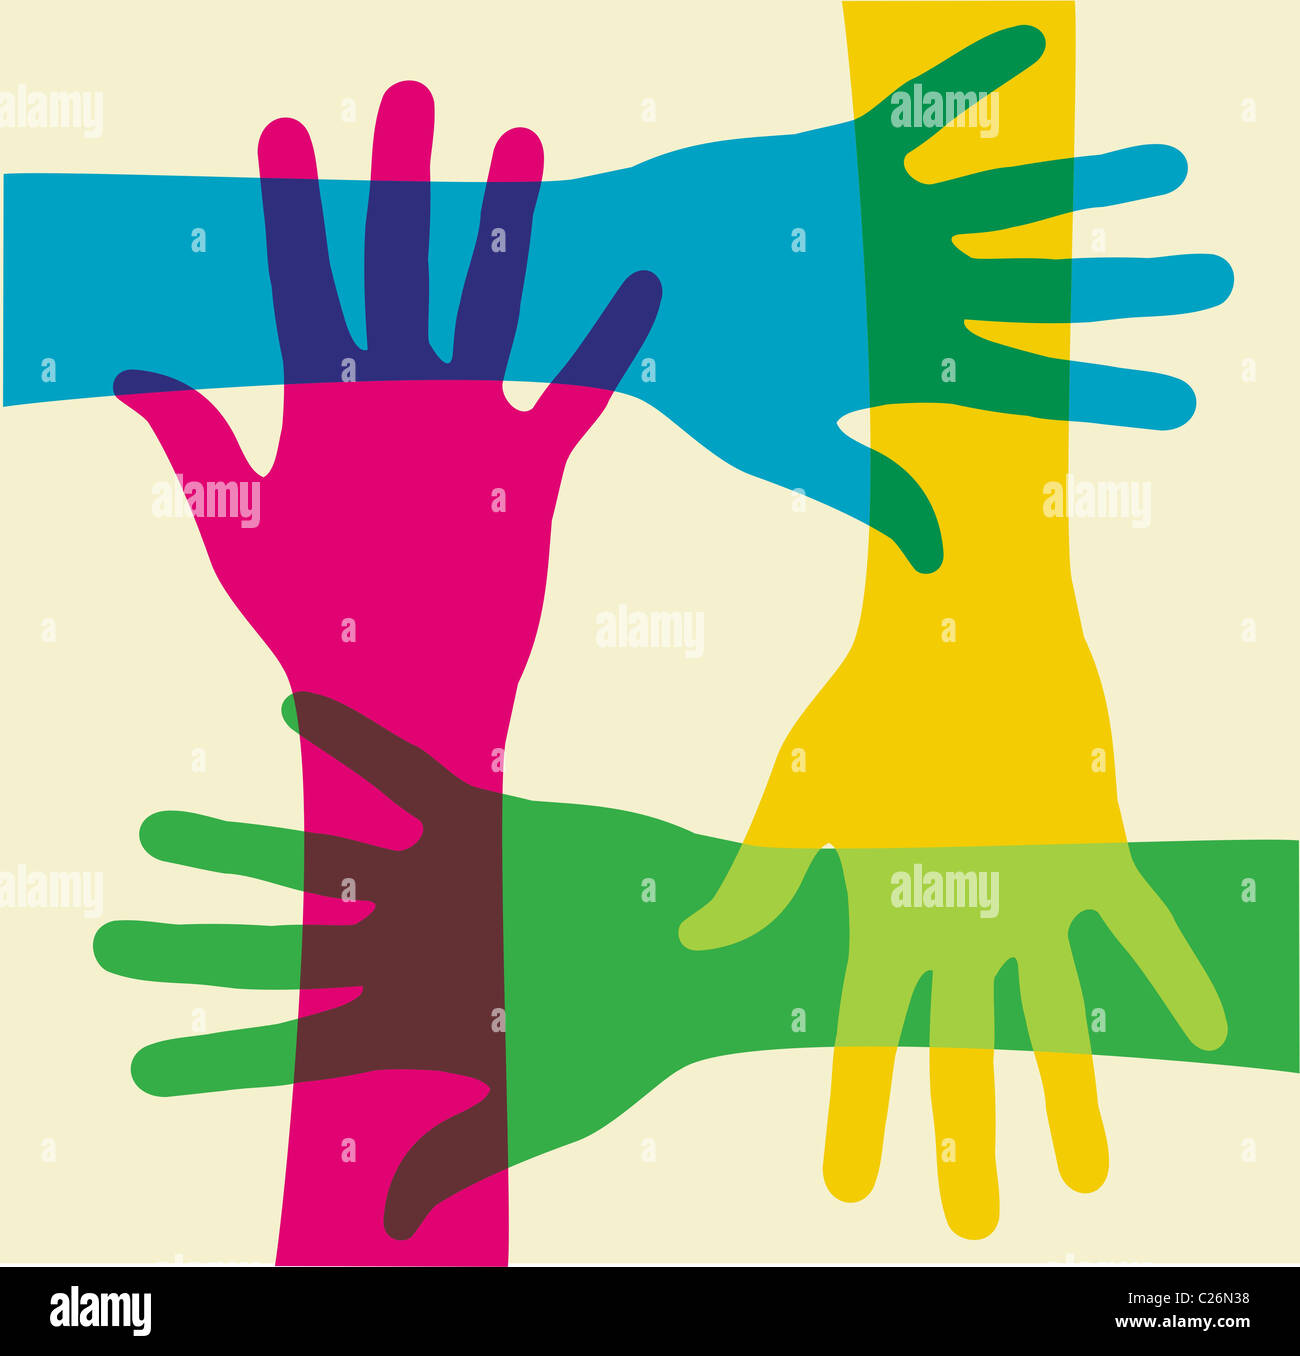 colorful hands illustration over a light background. Vector file available. Stock Photo